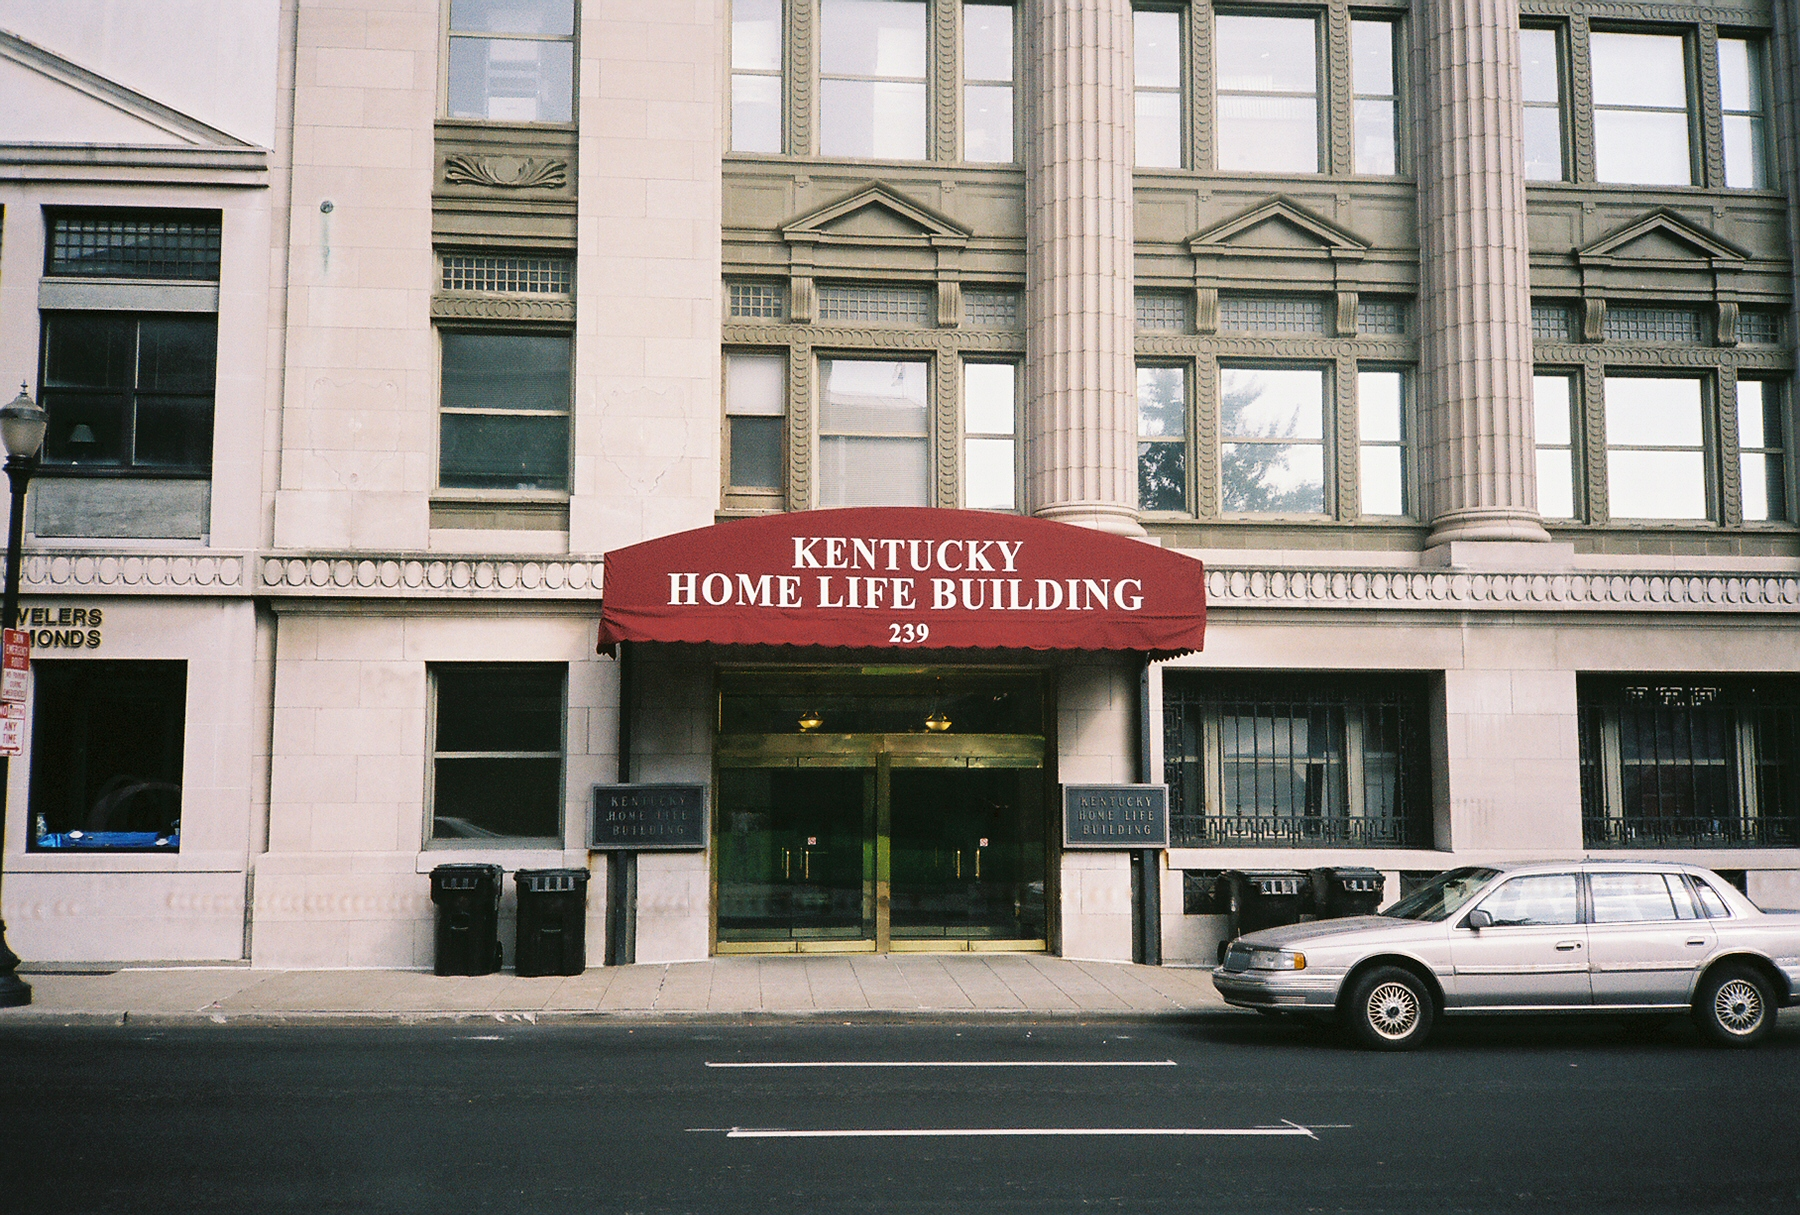 Kentucky Home Life Building